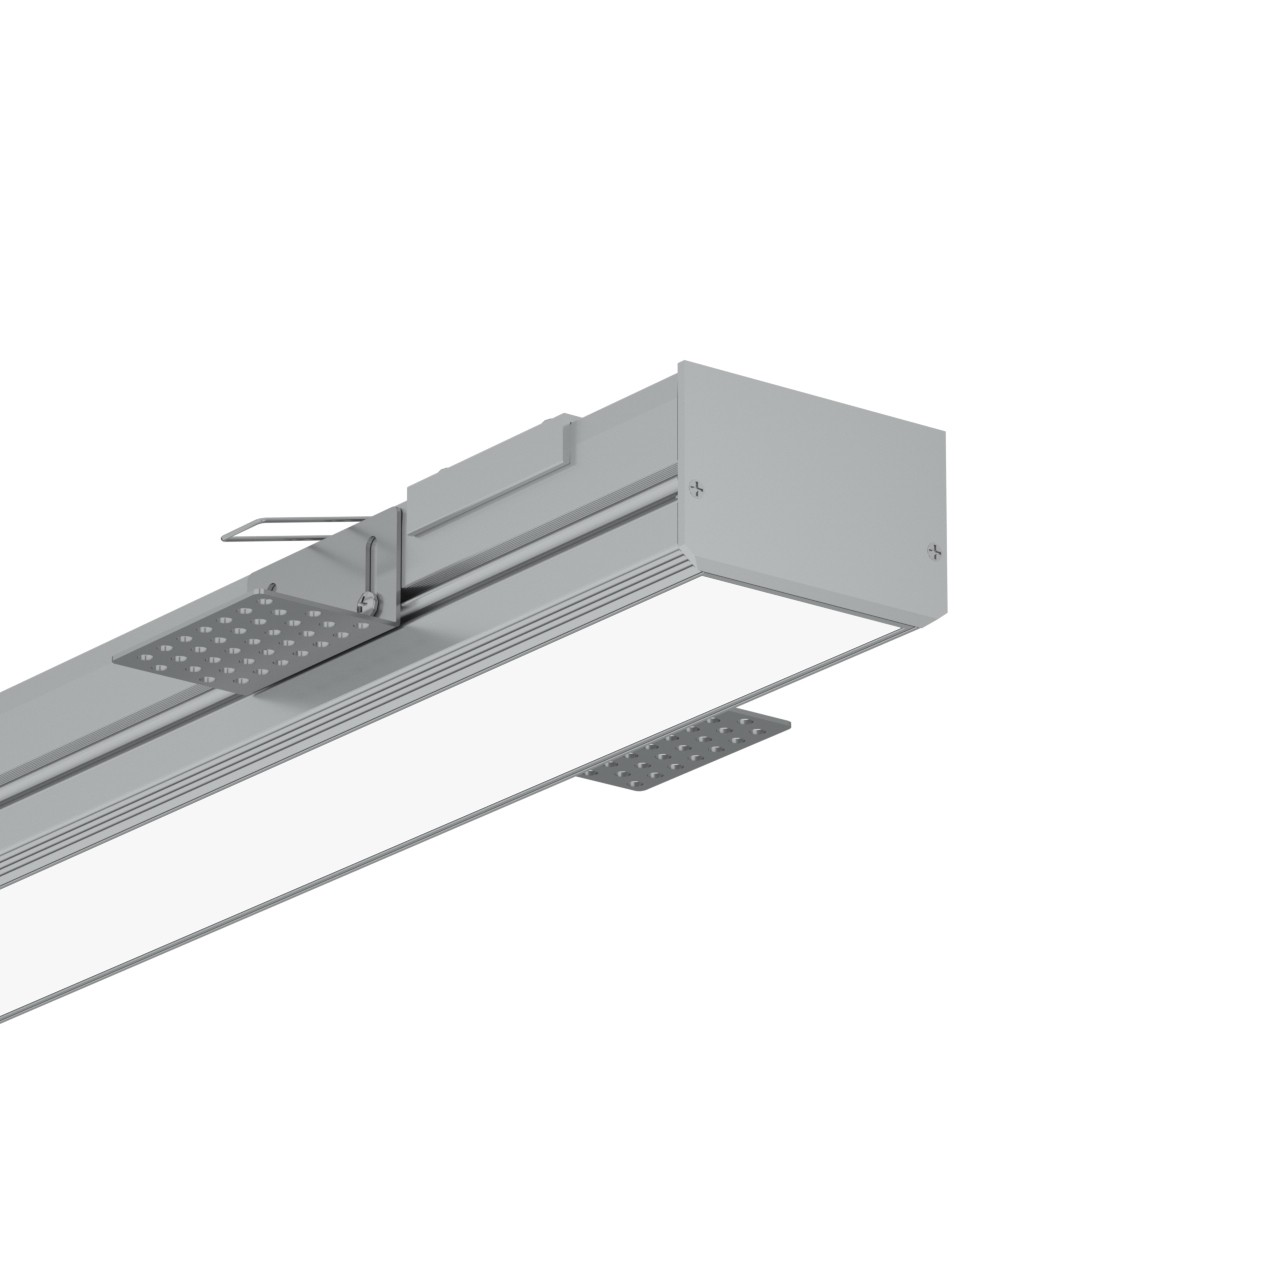 TR60 60mm Trimless førte profil for gips loft 74.7x48mm